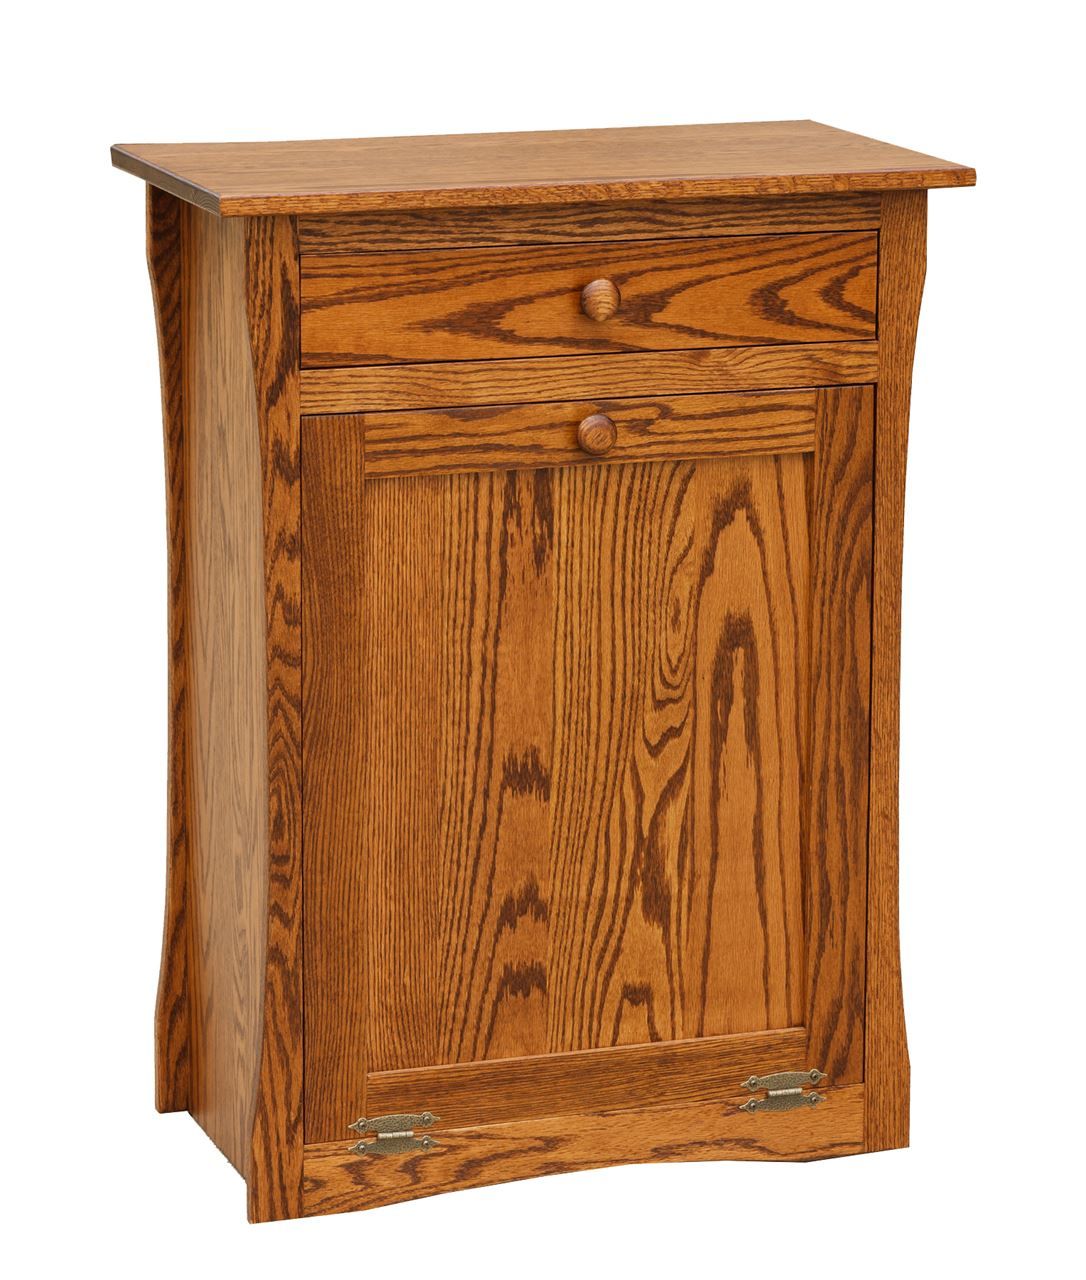 Four seasons furnishings amish made furniture contoured amish tilt out trash bin with a drawer - Amish tilt out trash bin ...